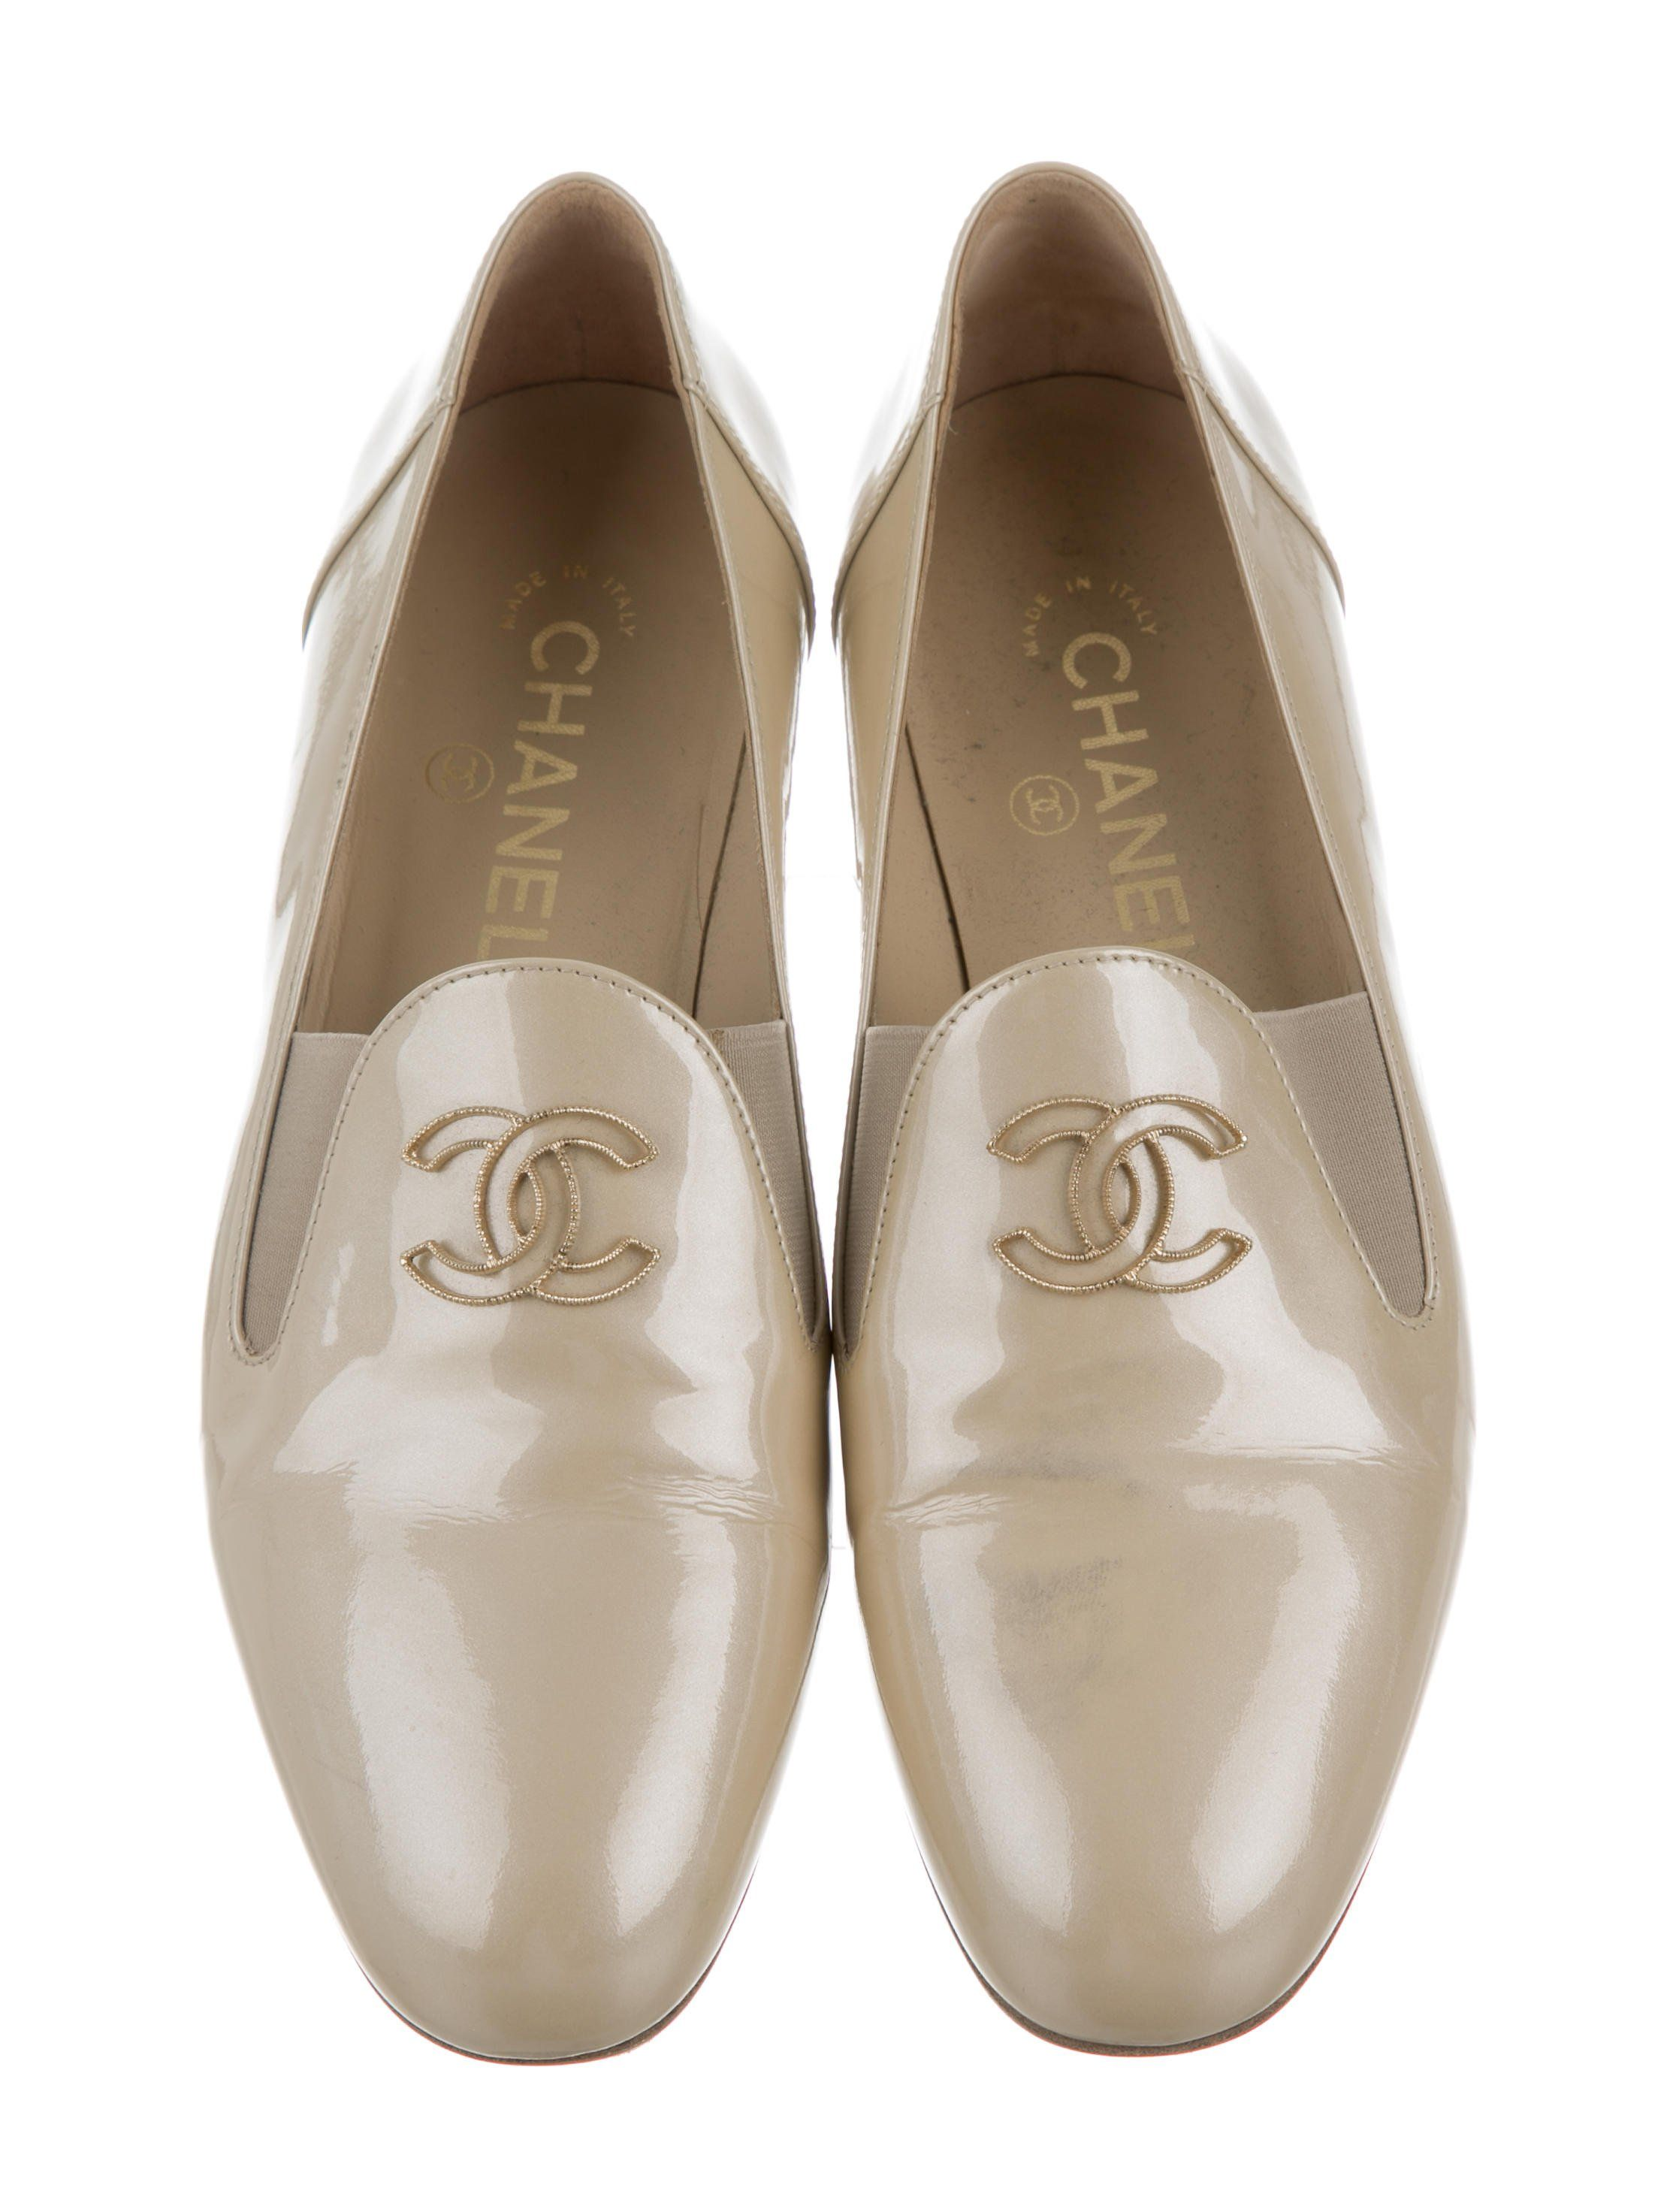 0f74654a07a Champagne metallic patent leather Chanel round-toe loafers with gold-tone  interlocking CC embellishments at uppers